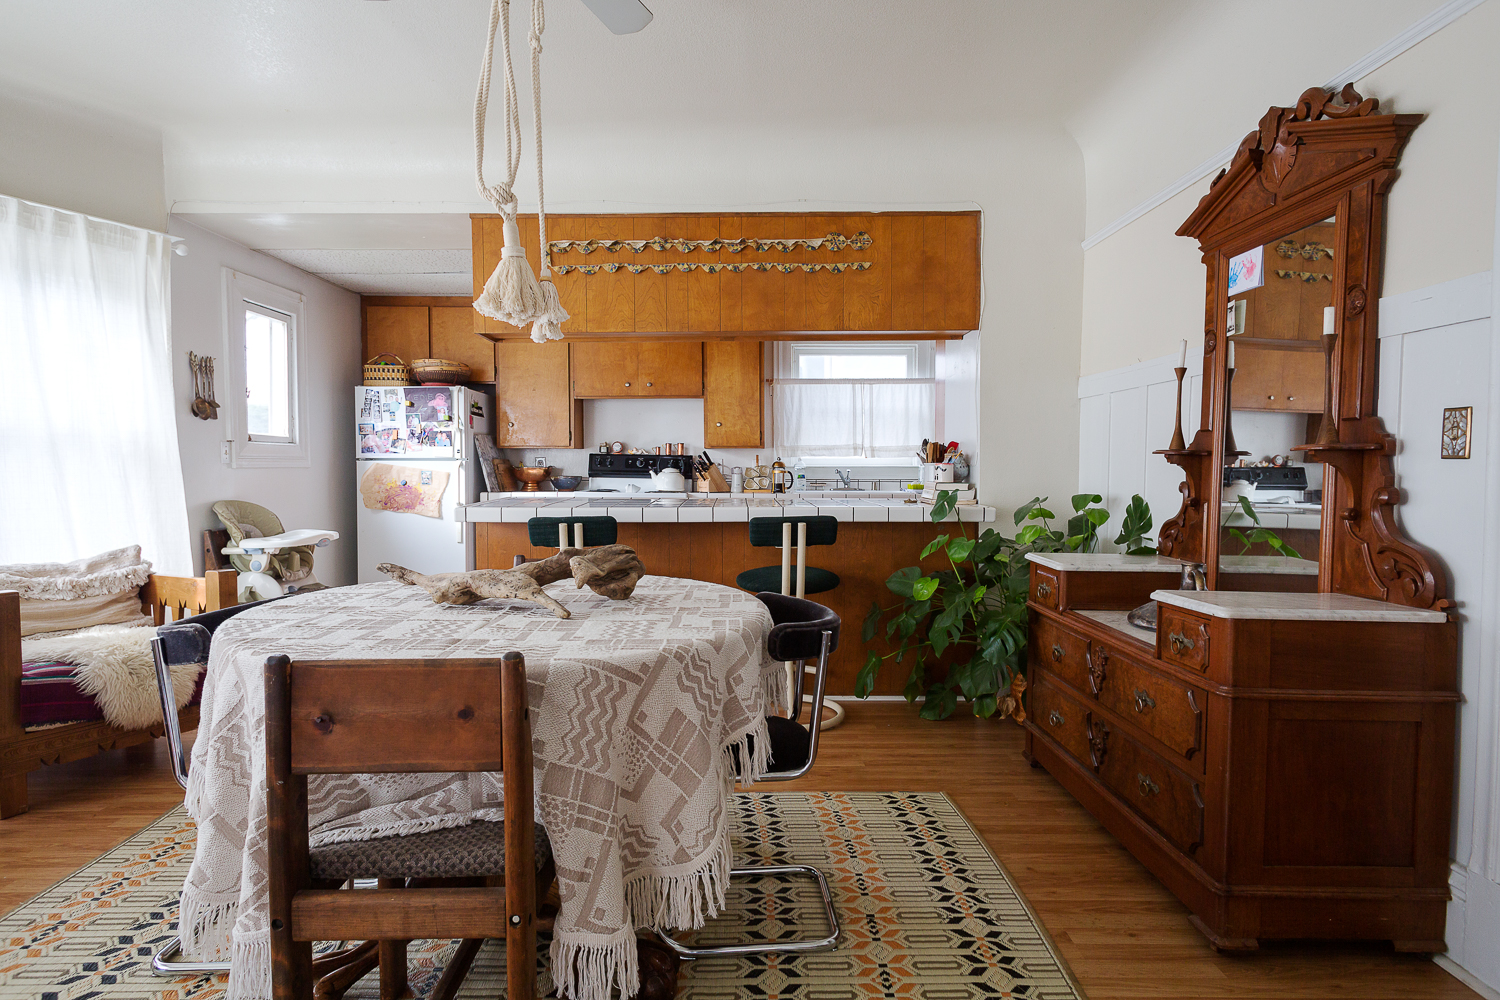 Gorgeous antiquity. Peep the vintage trimmings pinned up in the kitchen!